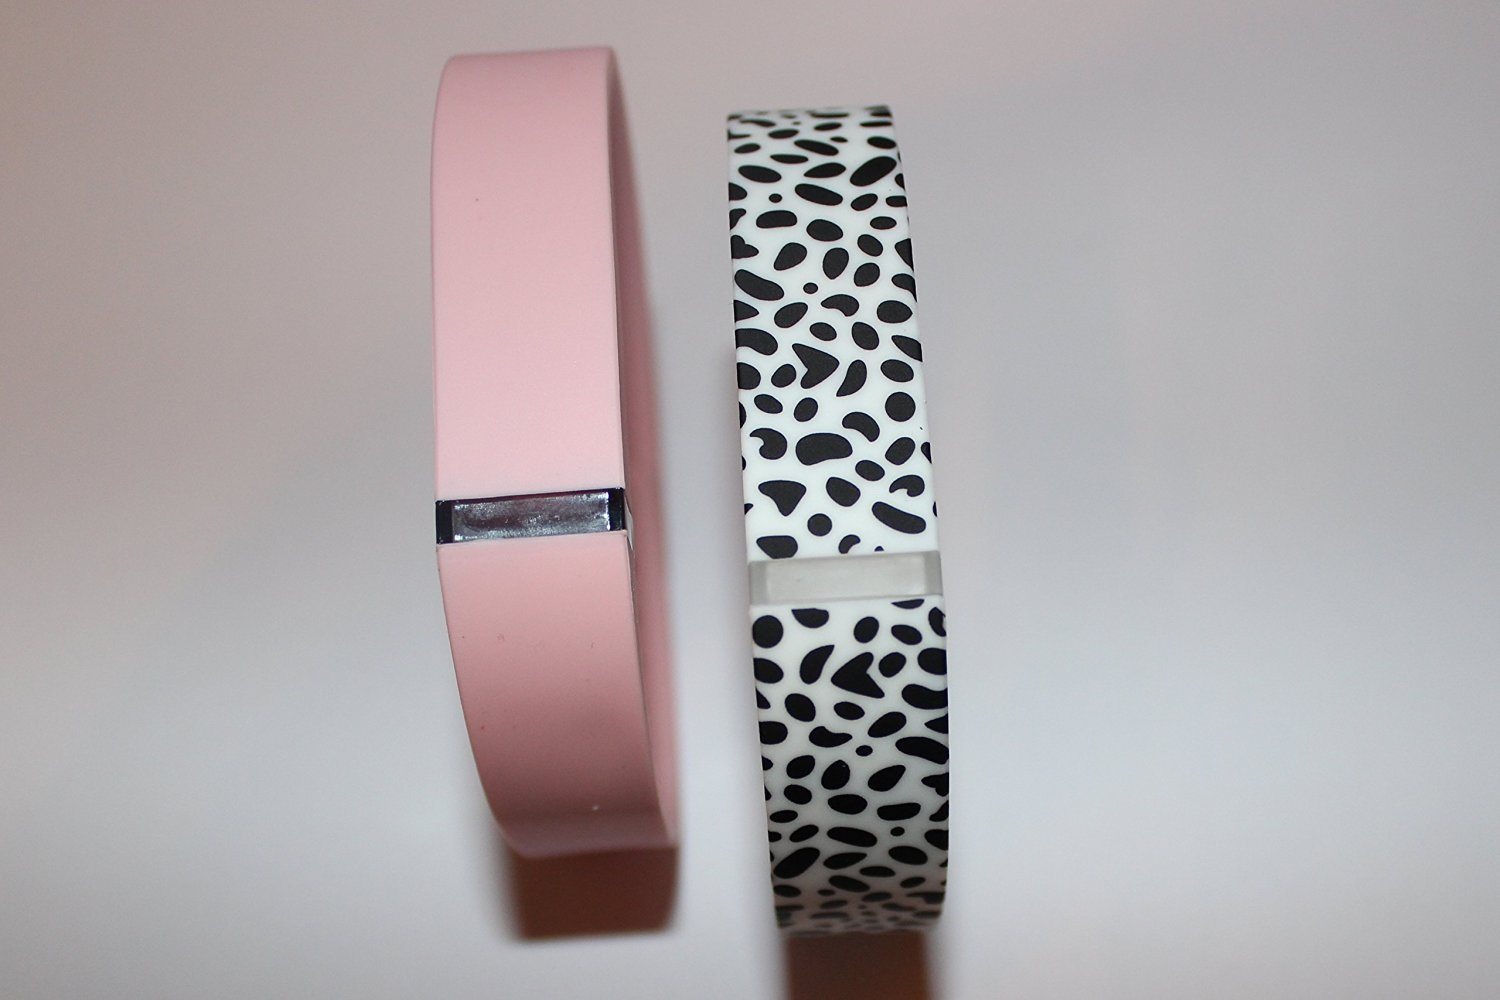 SUPTG Large 1 Dalmatian and 1 Baby Pink Wrist Bands For Fitbit Flex Bracelet (With Clasp , No Tracker) Replacement Bands Wireless Fitness Accessories Tracking Exercise Sport Activity